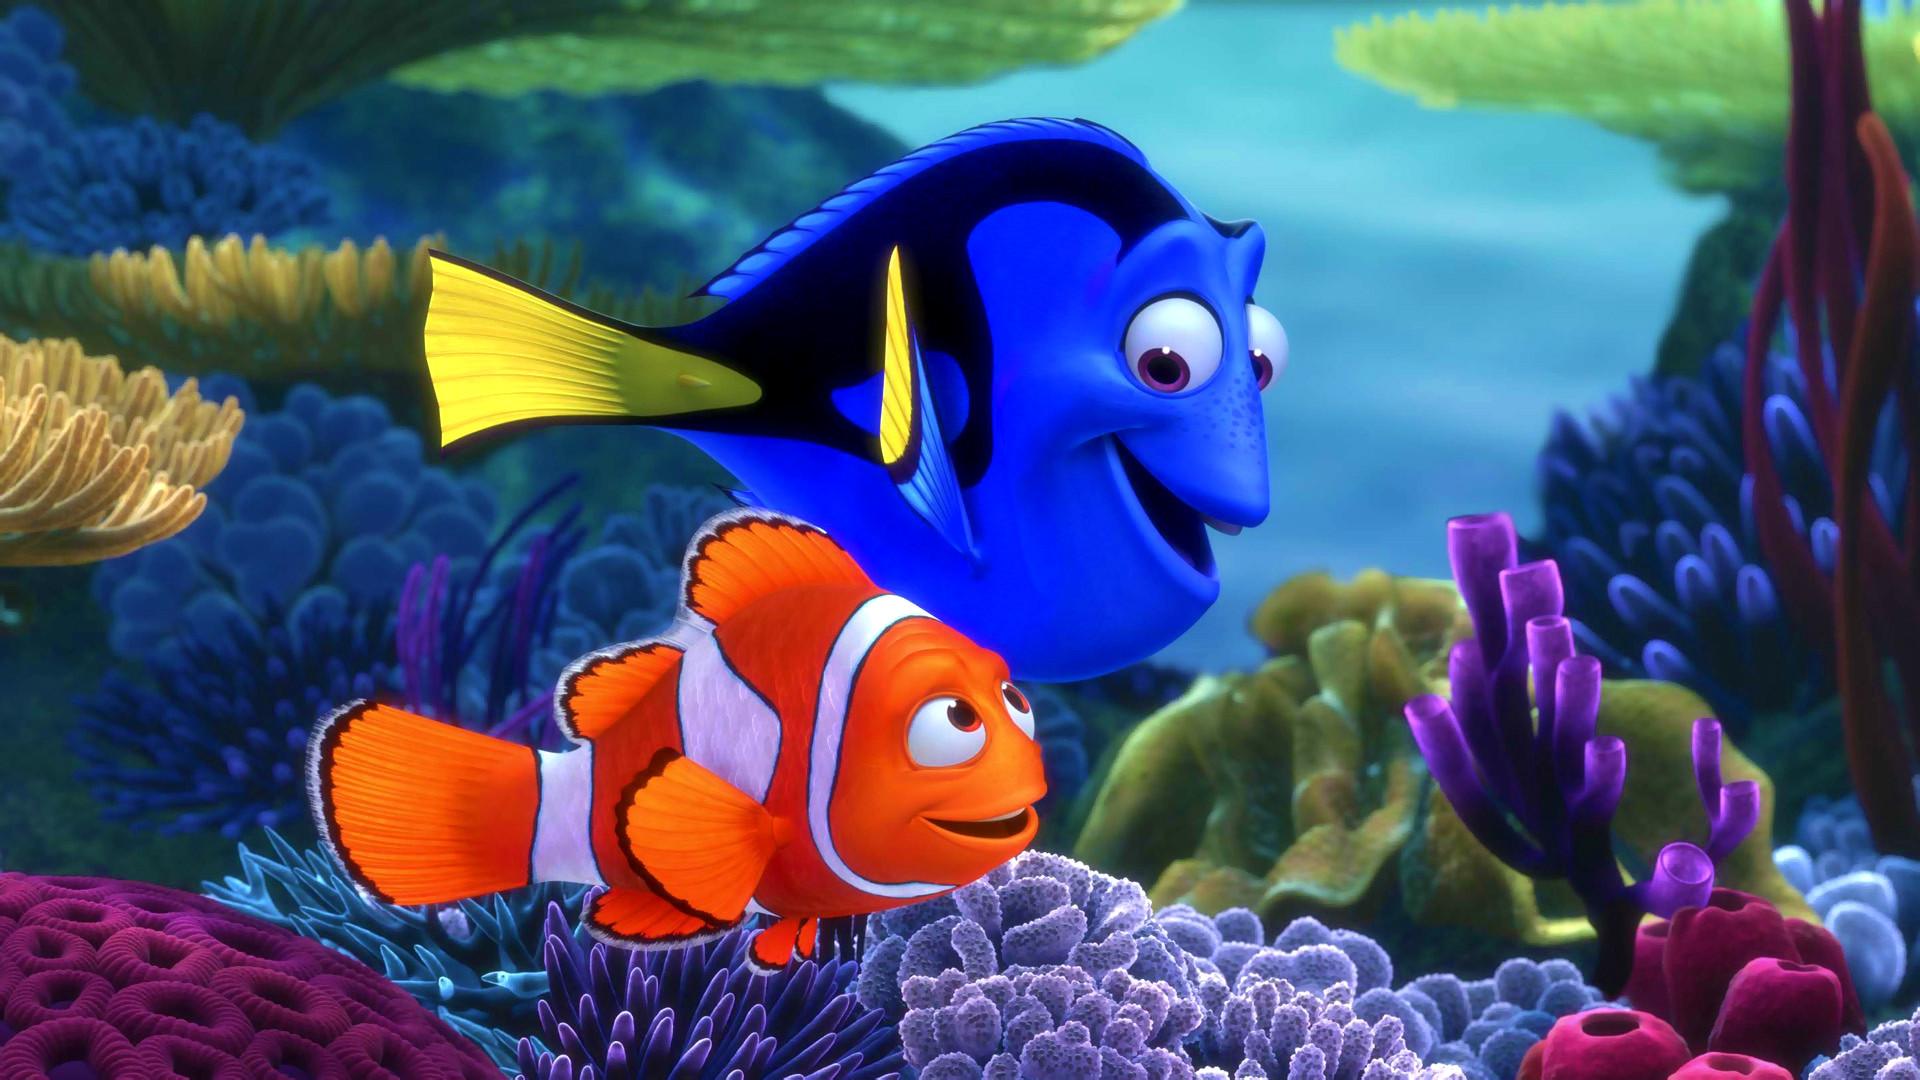 Dory Quotes 14 'finding Nemo' Quotes To Remind You To Just Keep Swimming